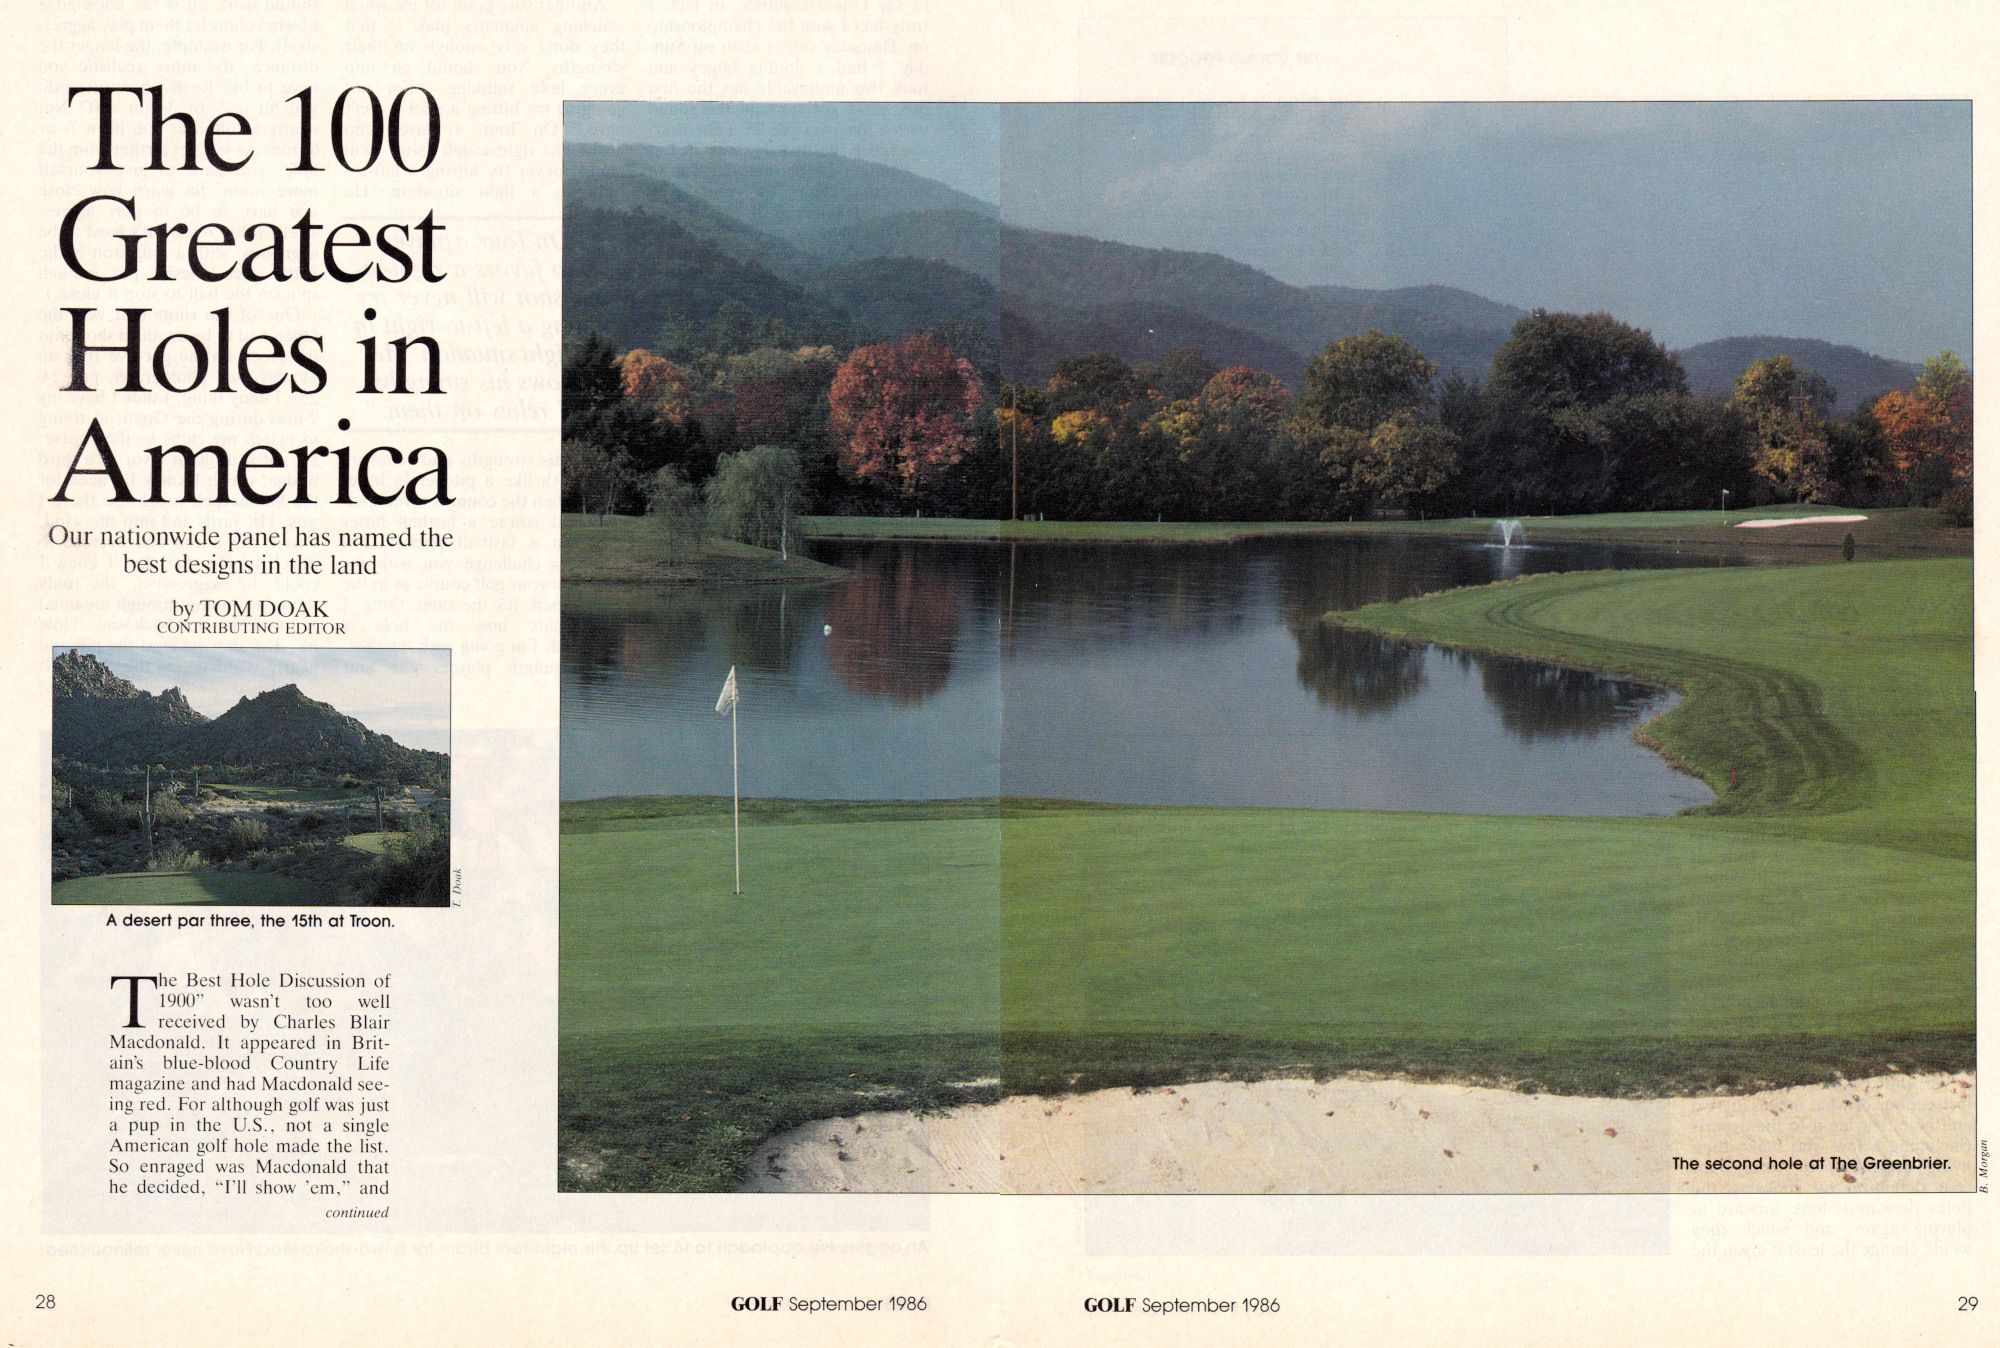 The 100 Greatest Holes in America